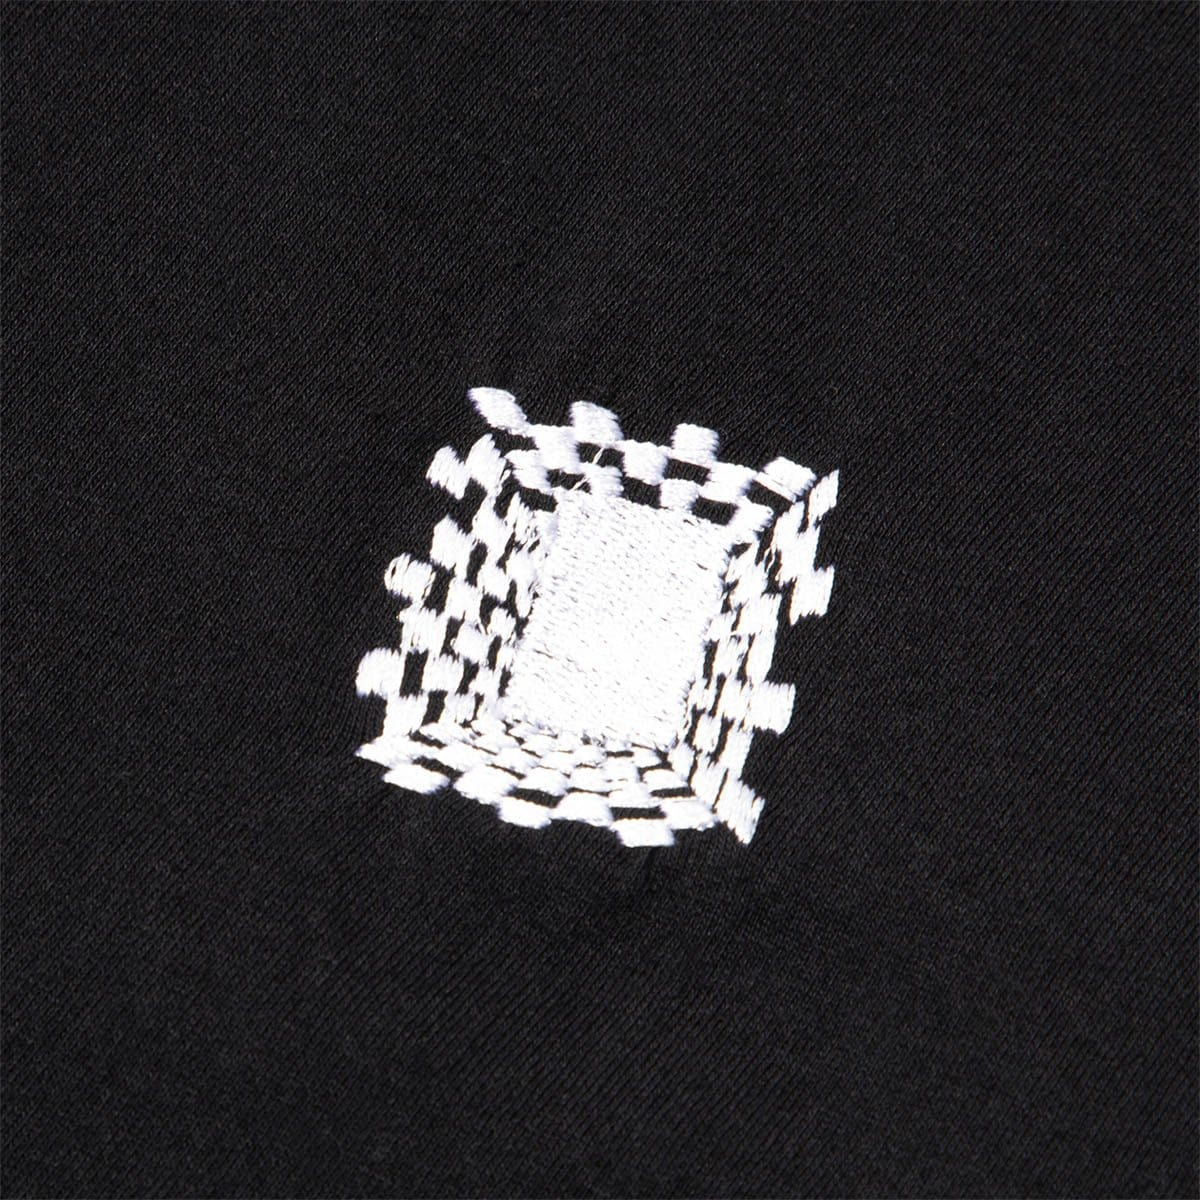 PRMTVO T-Shirts PSYCH PATTERN (EMBROIDERY)